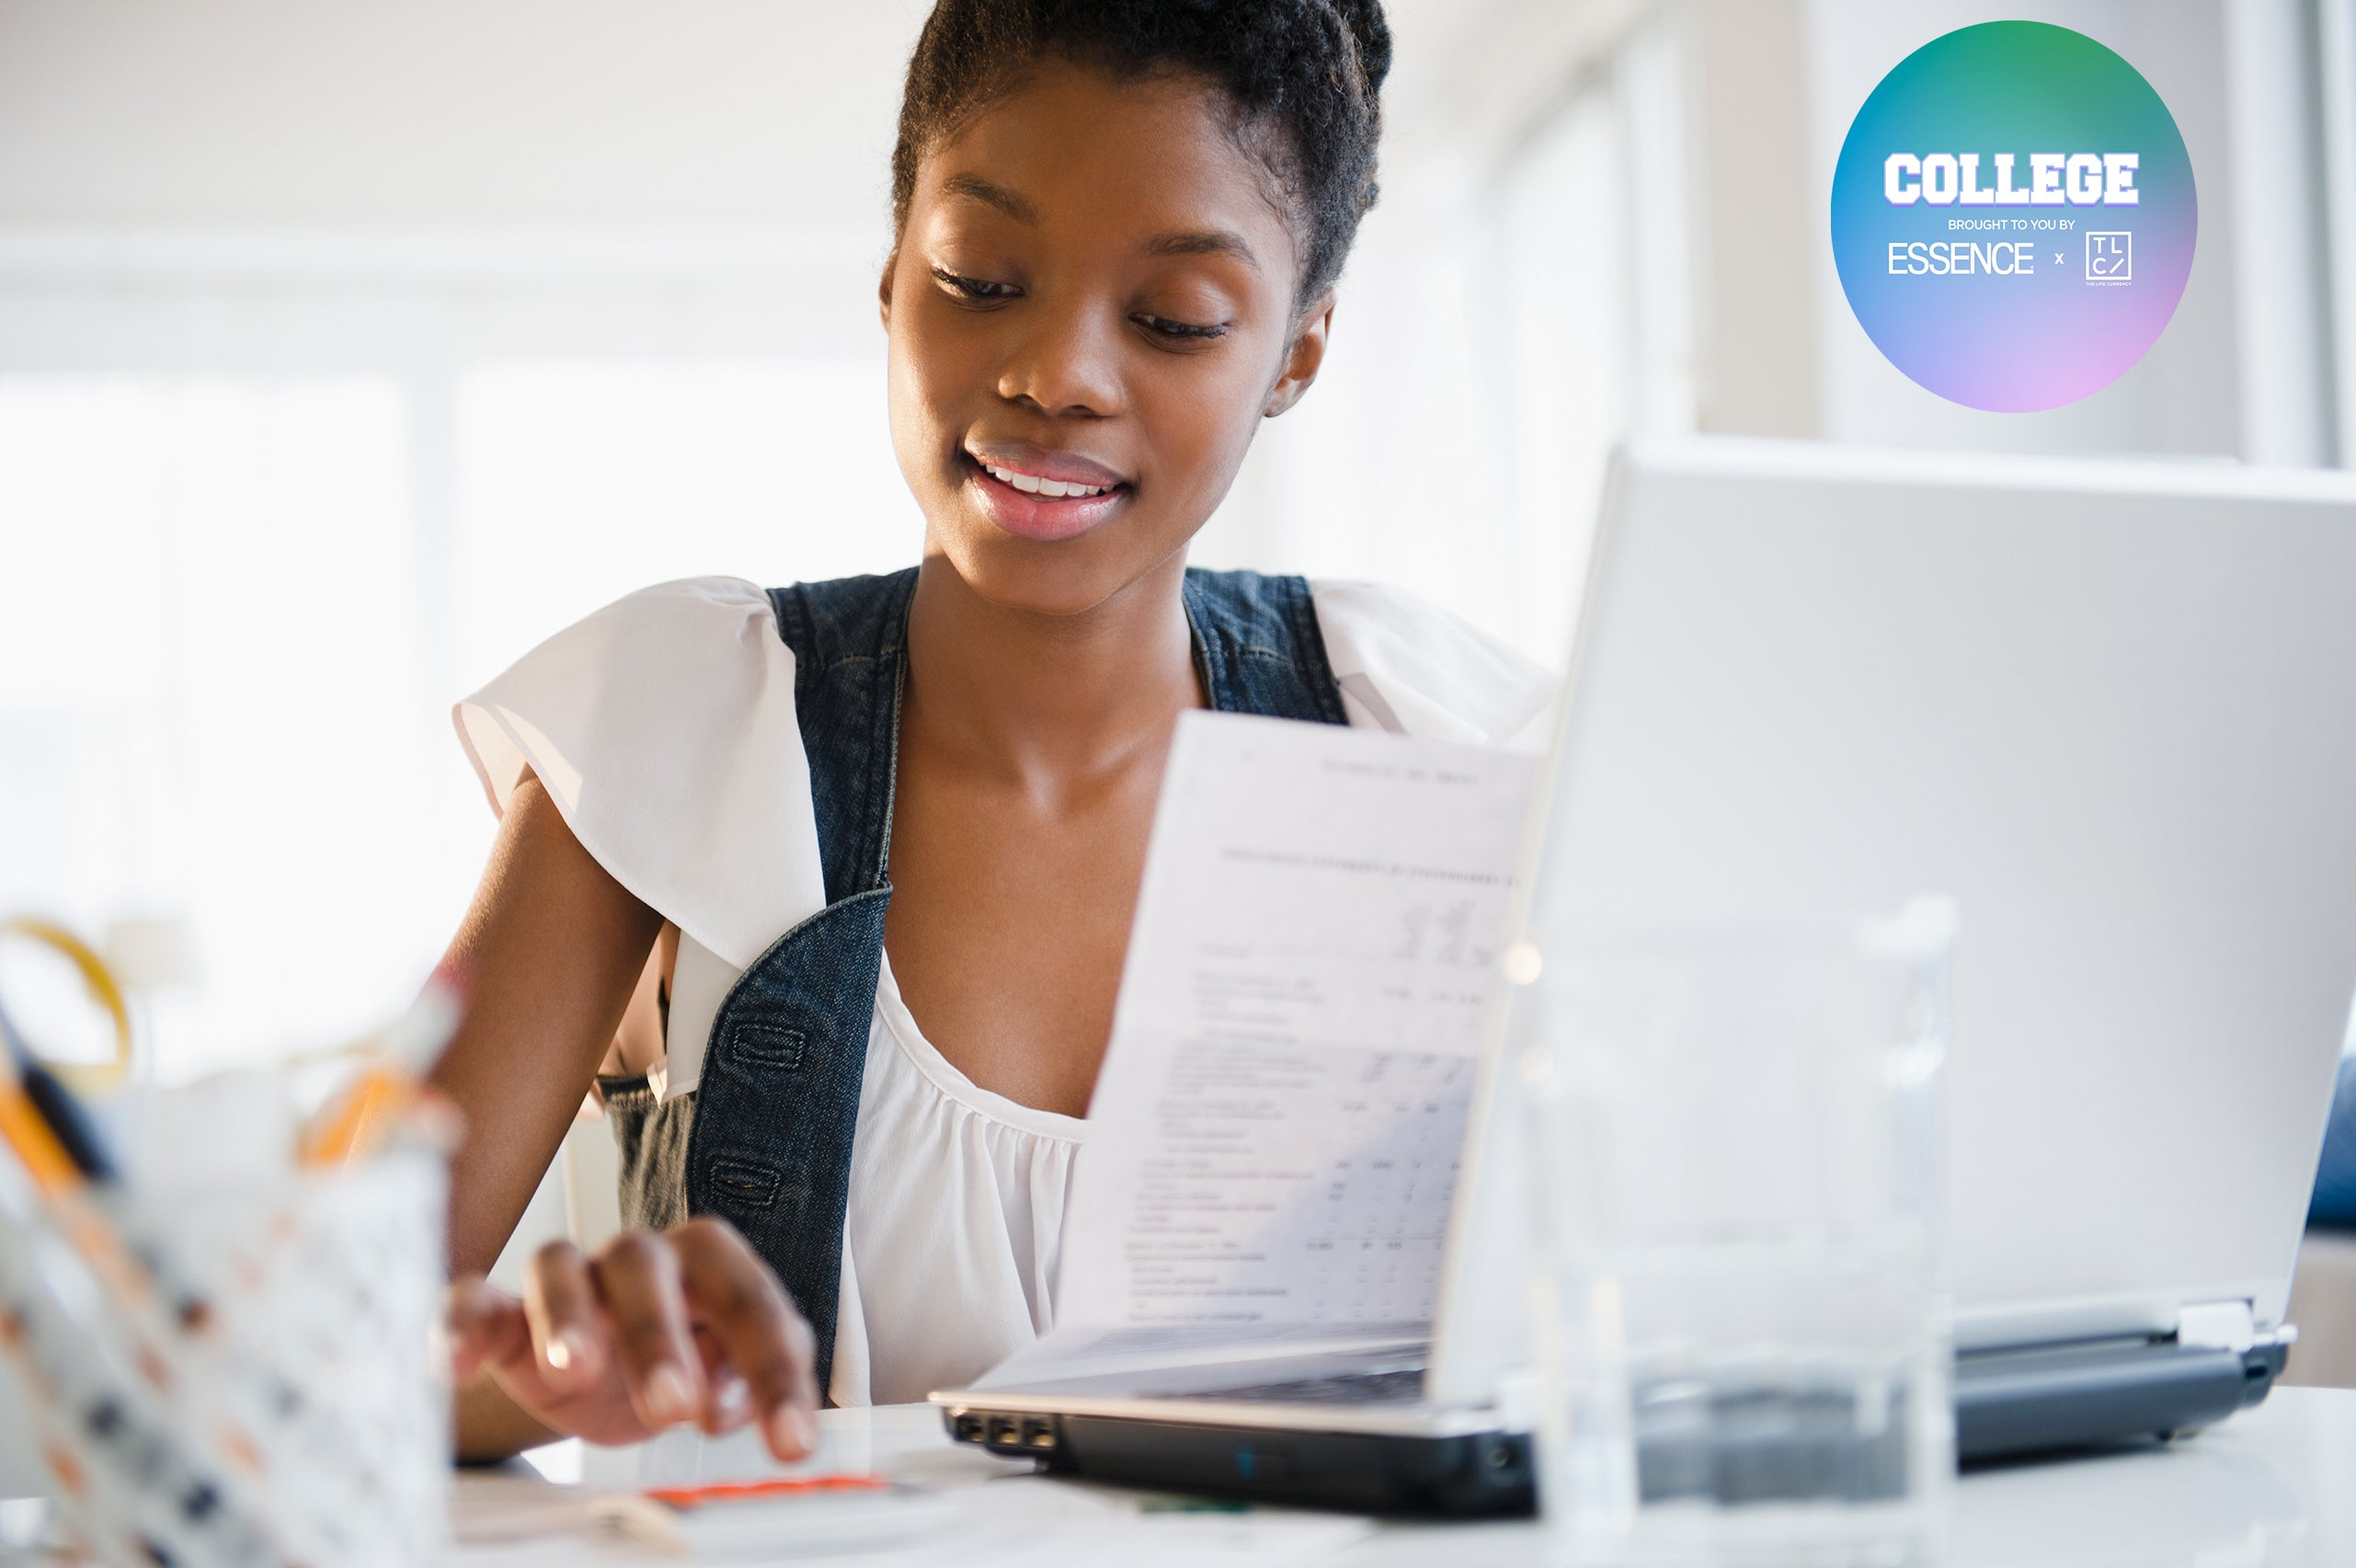 College Budgeting 101: Everything You Need To Know About Money